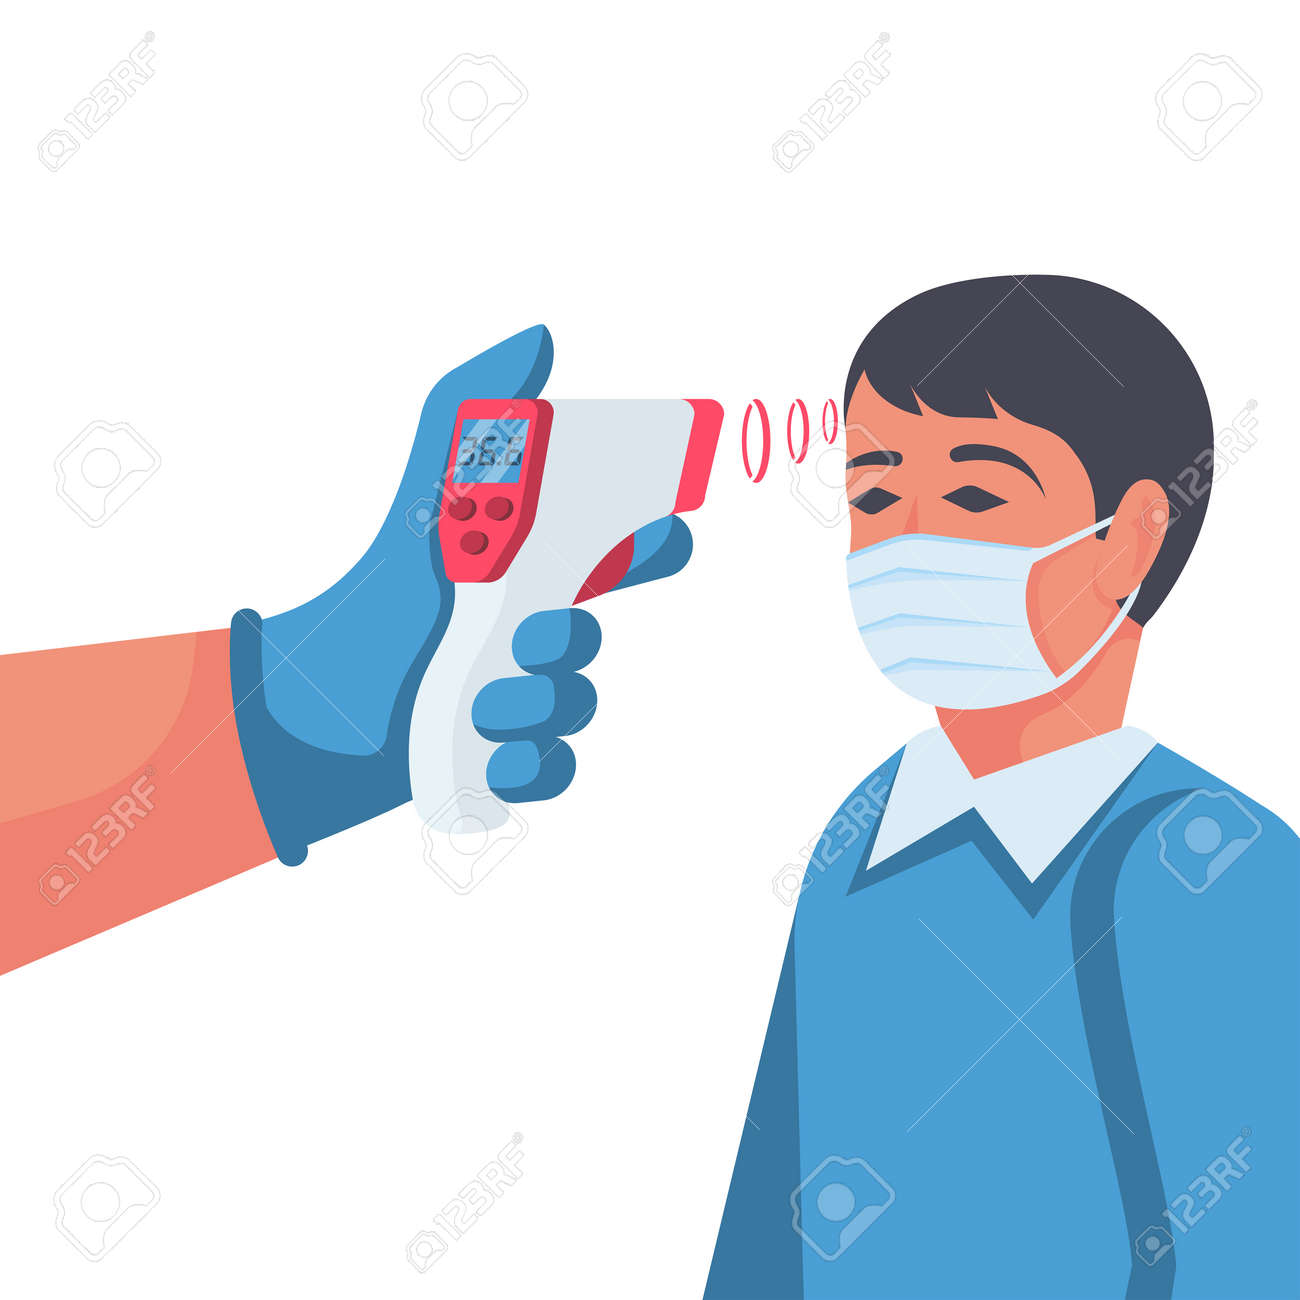 Temperature check. Doctor holding a non-contact thermometer in hand - 143295897